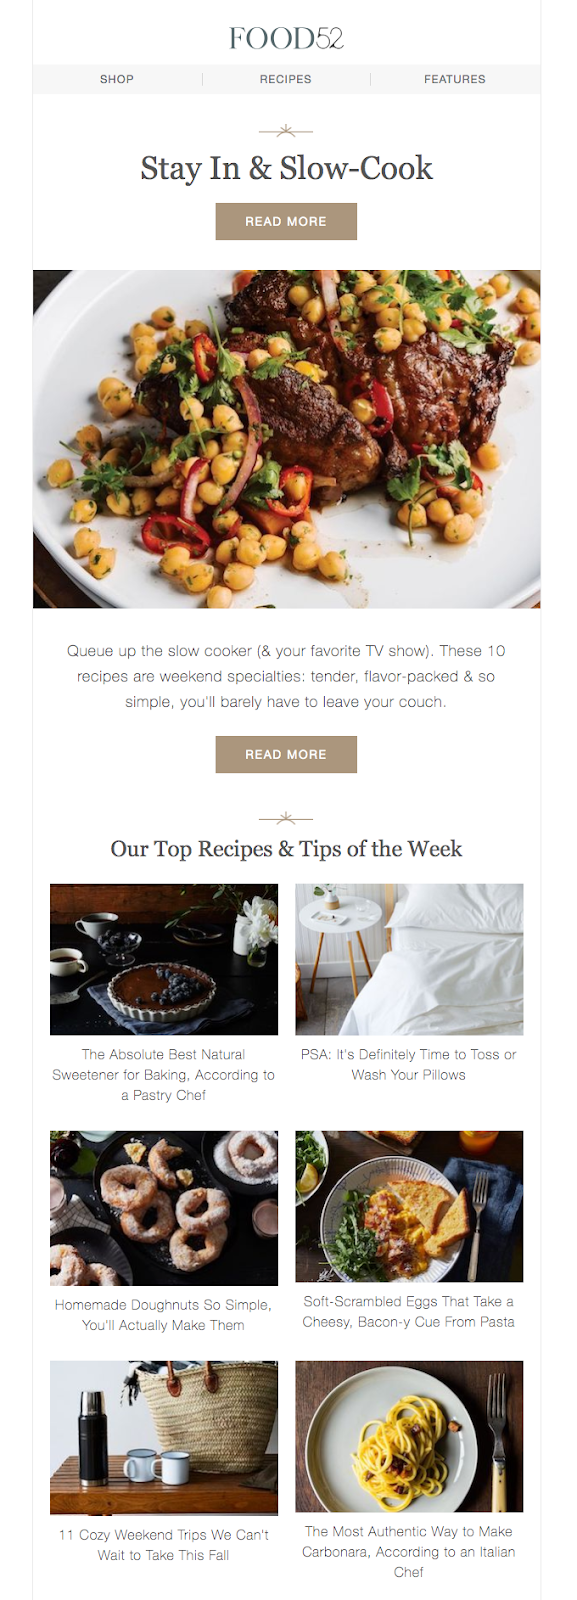 An example of a newsletter email from Food52